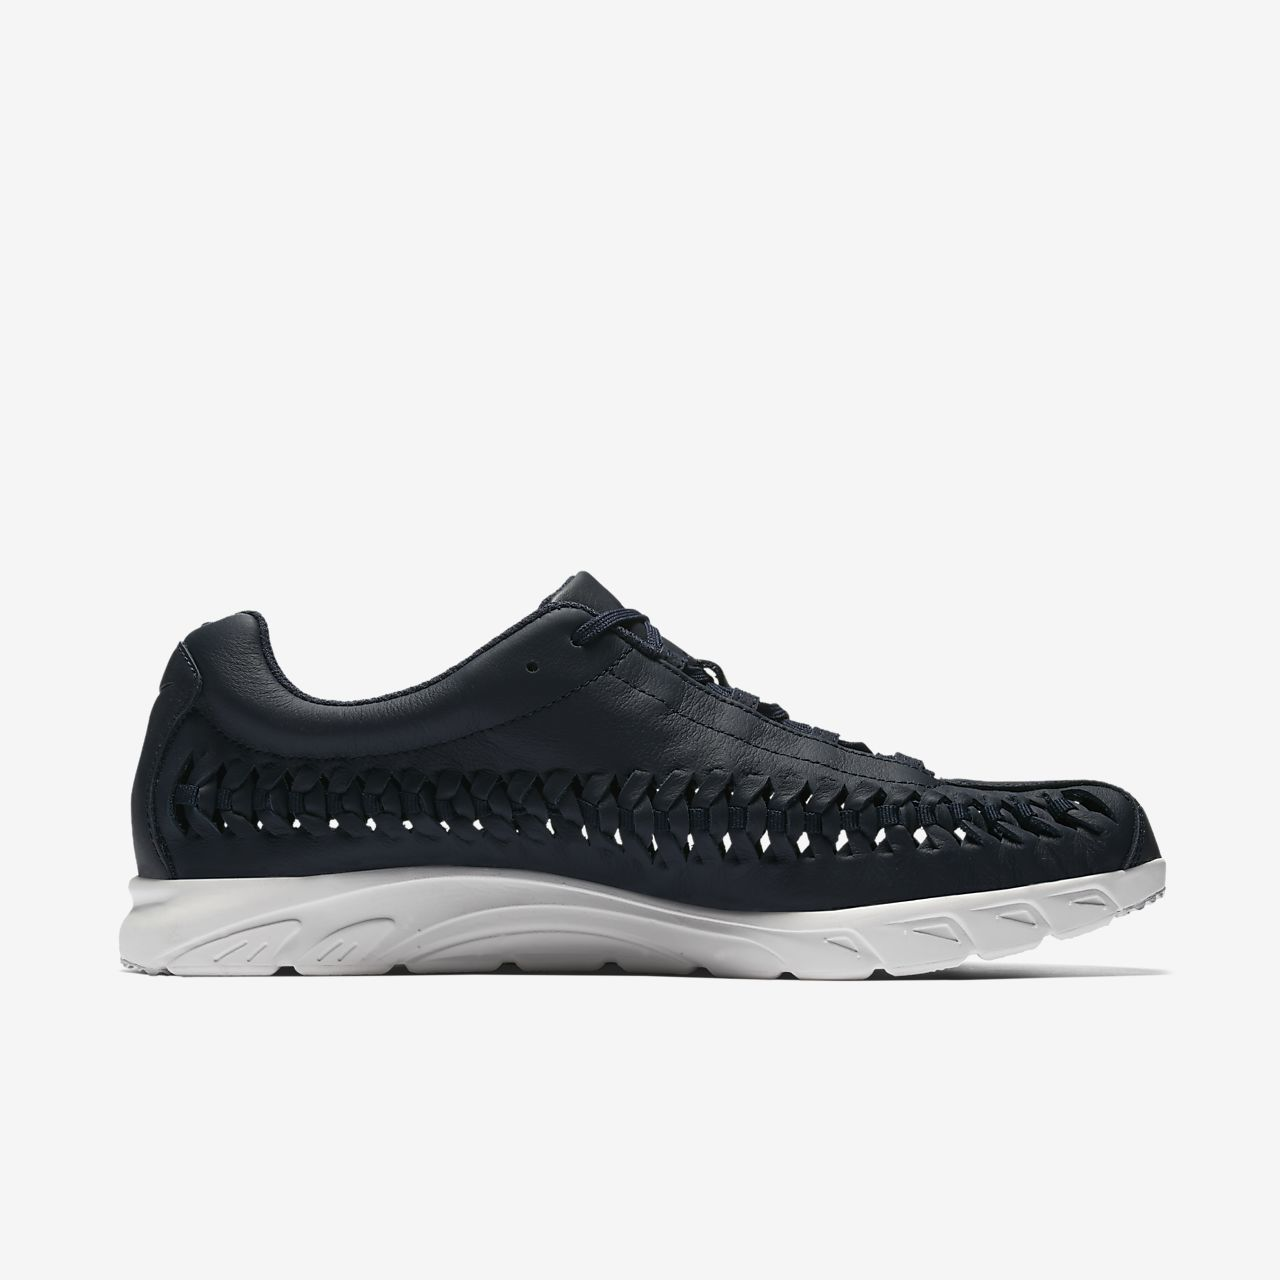 356c3e4b436 Nike Mayfly Woven Men s Shoe. Nike.com IE